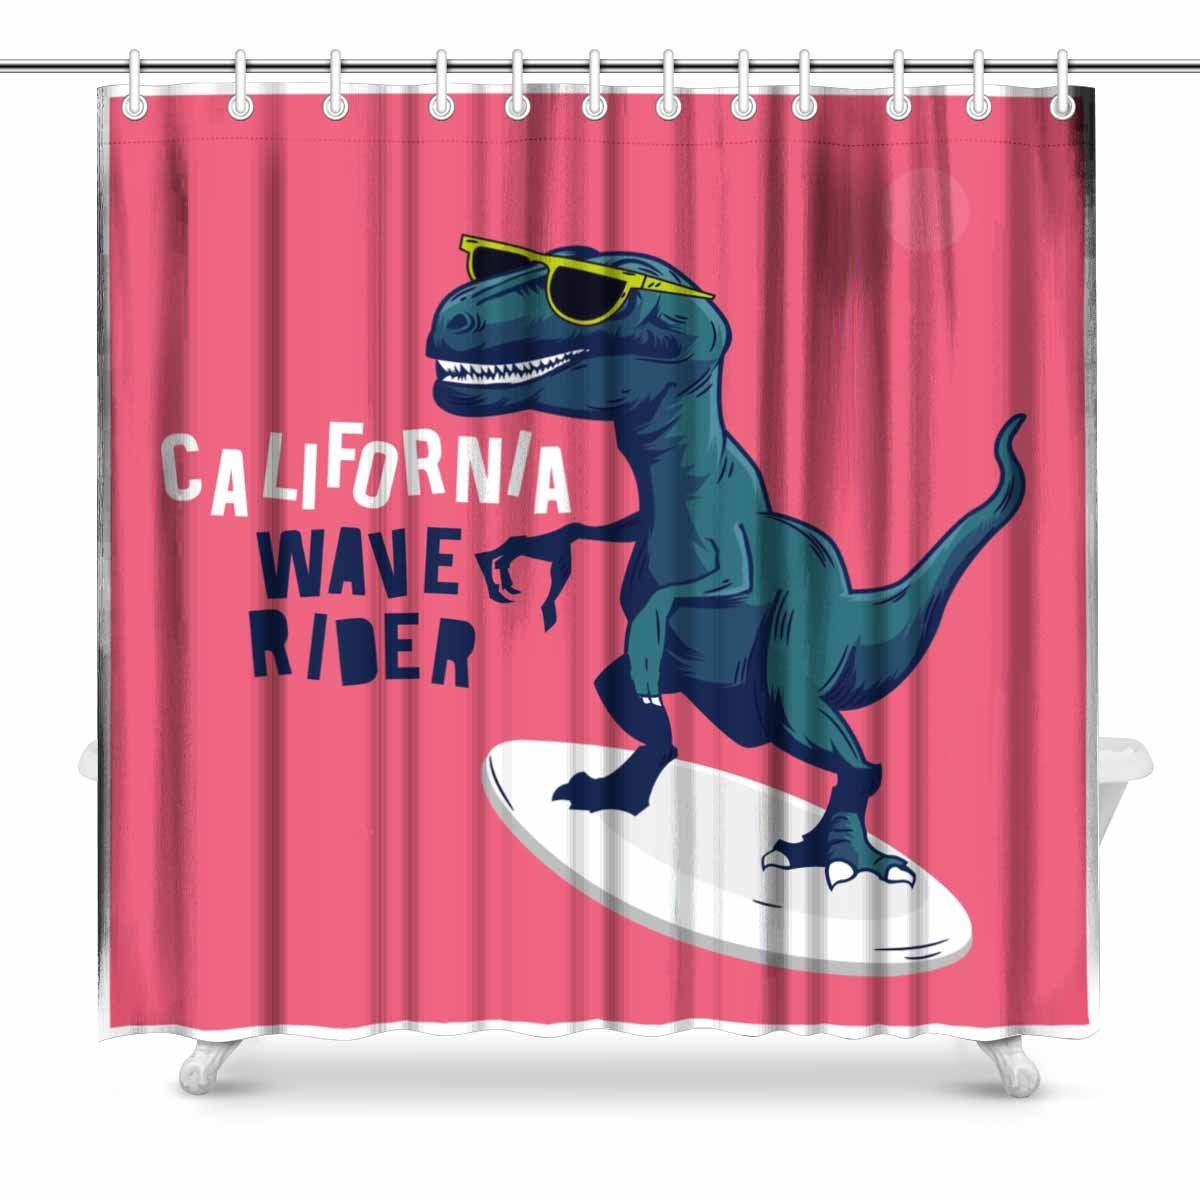 Mkhert Surfer Dinosaur Shower Curtain Home Decor Bathroom Shower Curtain 66x72 Inch